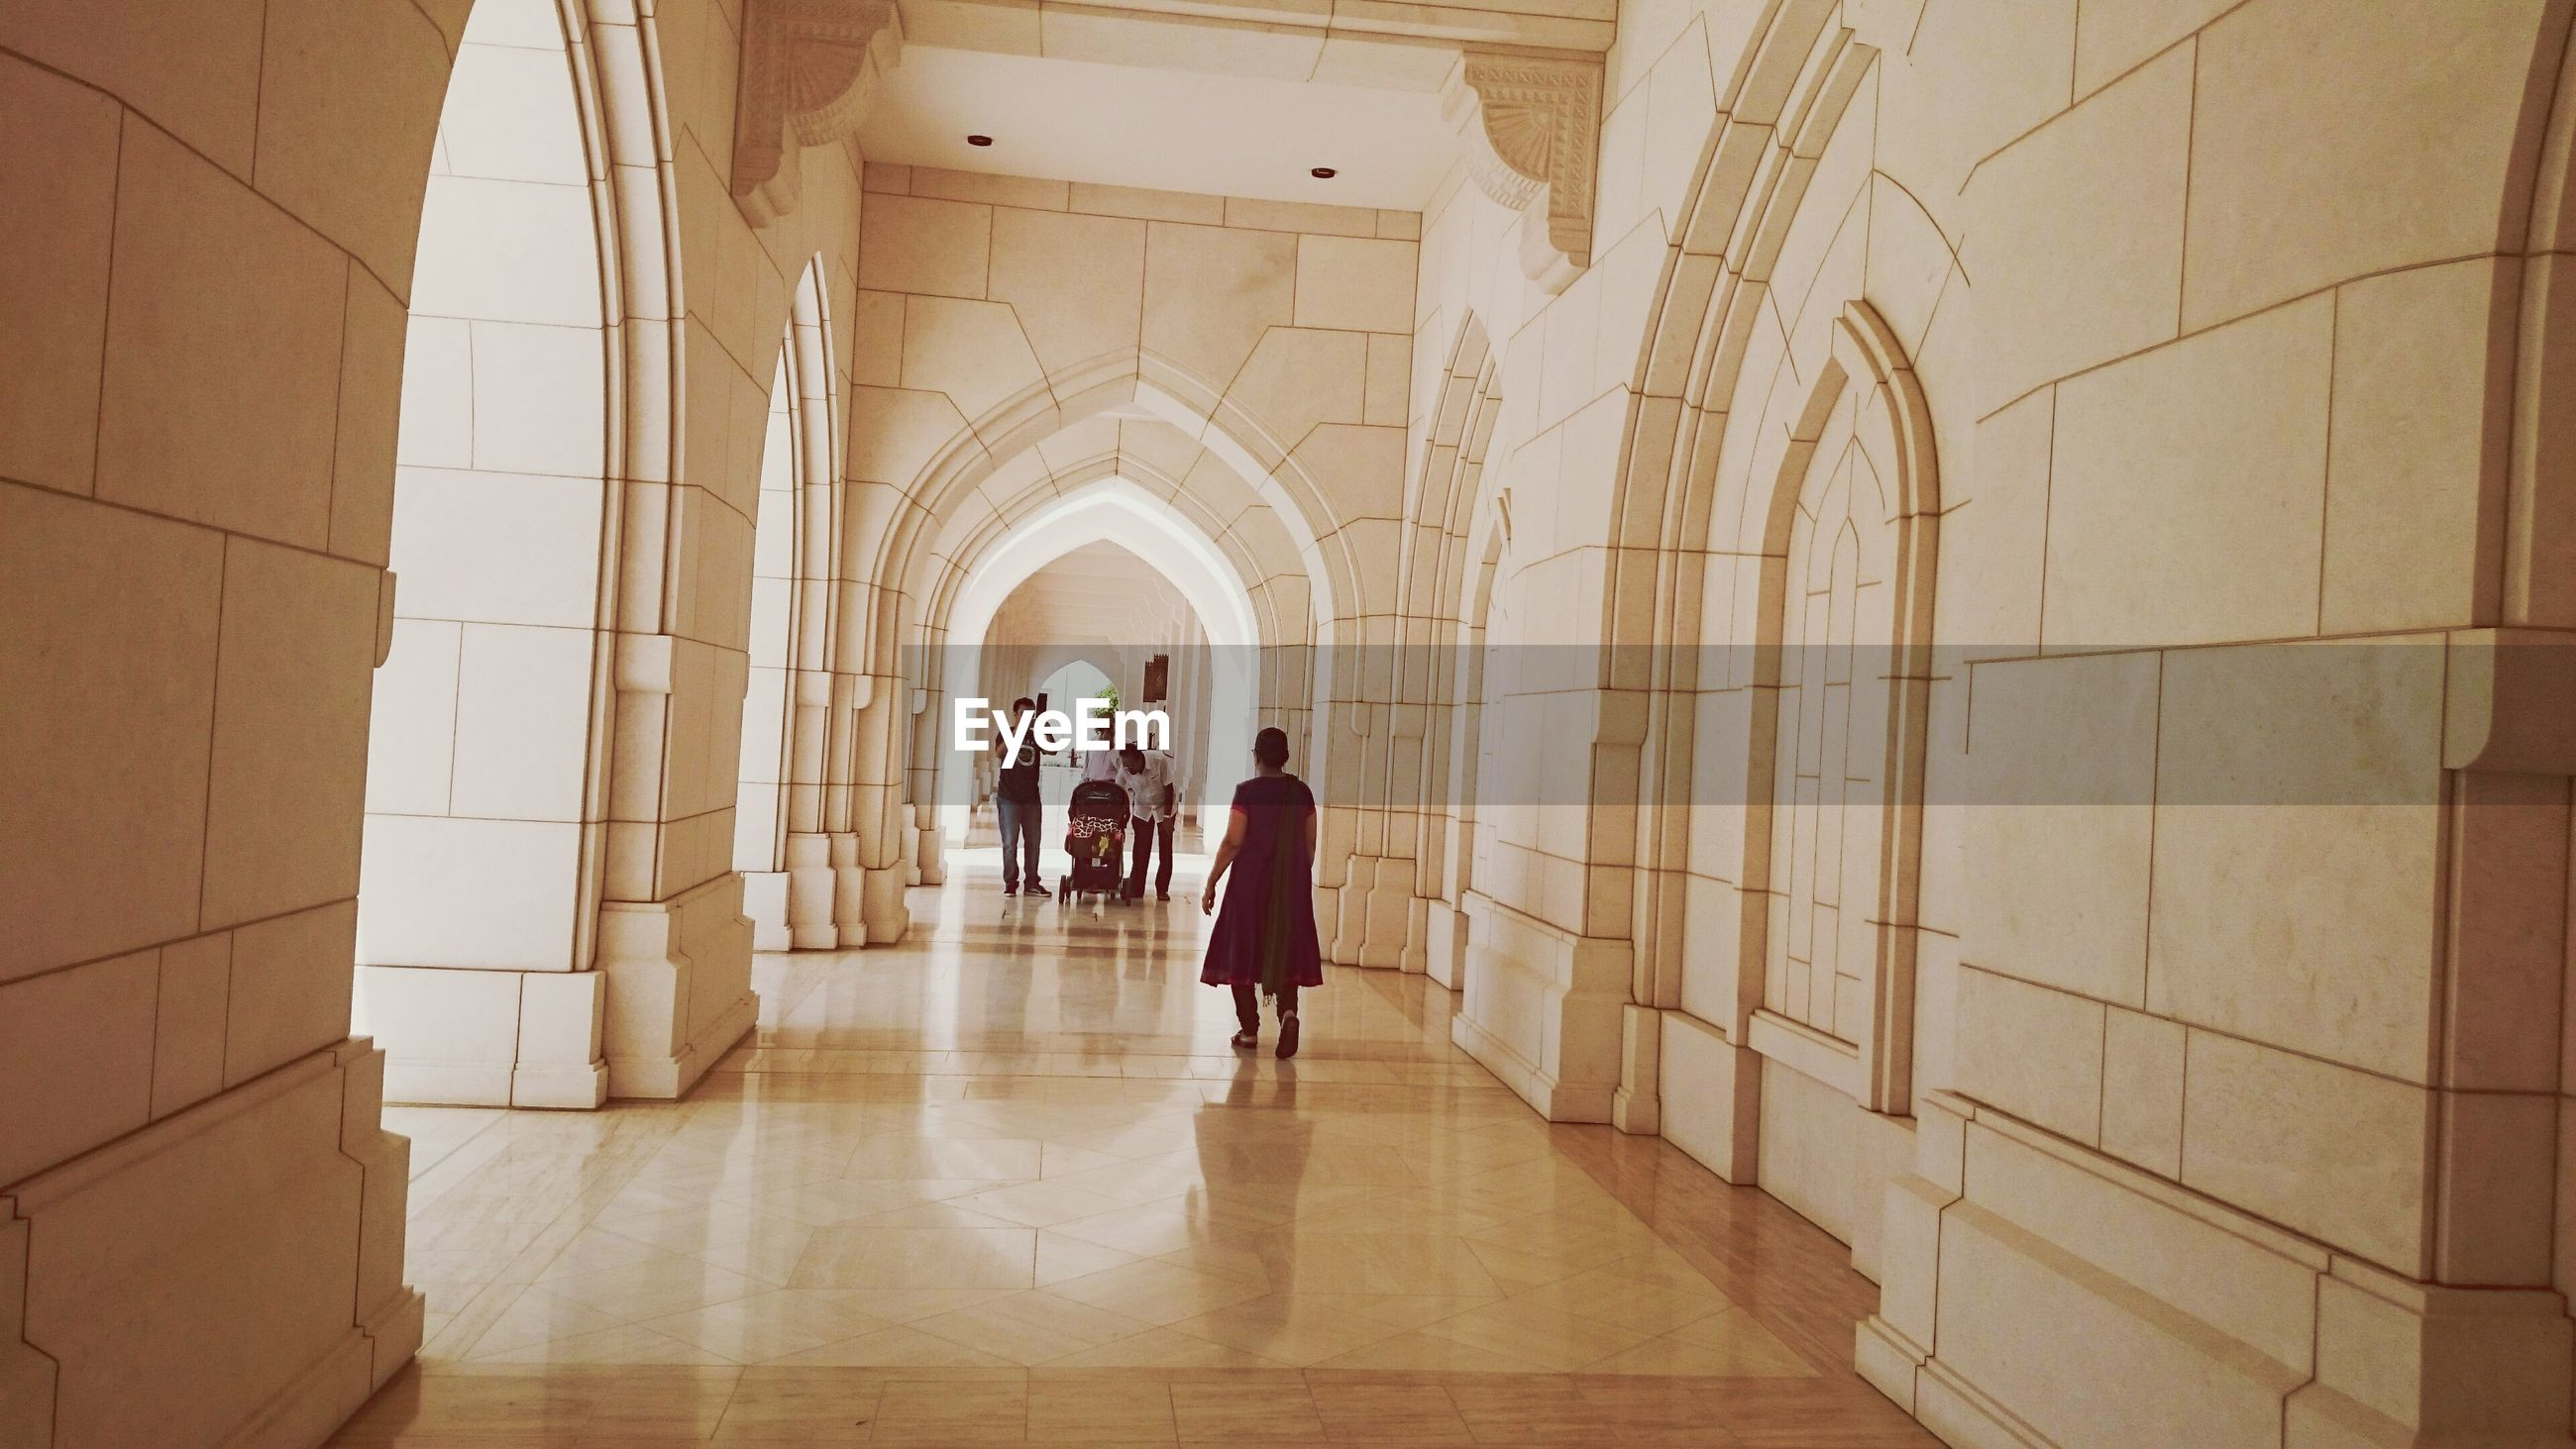 indoors, architecture, arch, full length, built structure, lifestyles, walking, leisure activity, rear view, men, person, wall - building feature, corridor, standing, the way forward, flooring, tiled floor, casual clothing